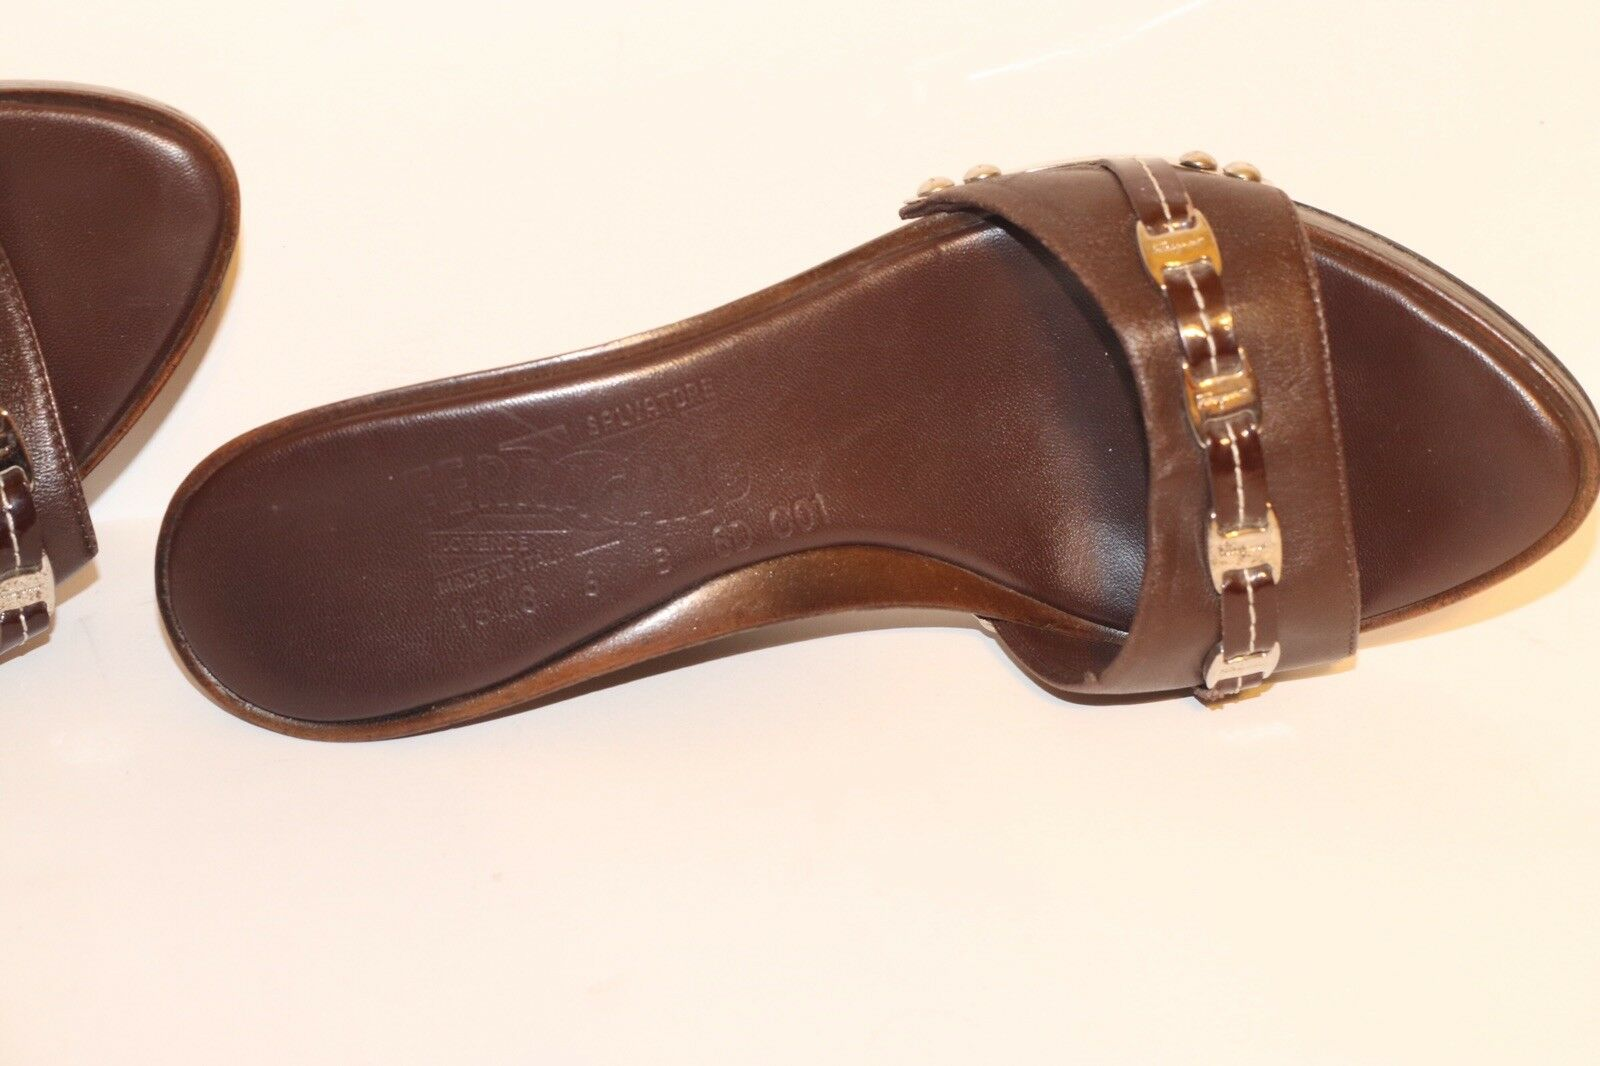 SALVATORE FERRAGAMO braun LEATHER IN Open-Toe WEDGE Sandals MADE IN LEATHER ITALY Sz 6 7d2038